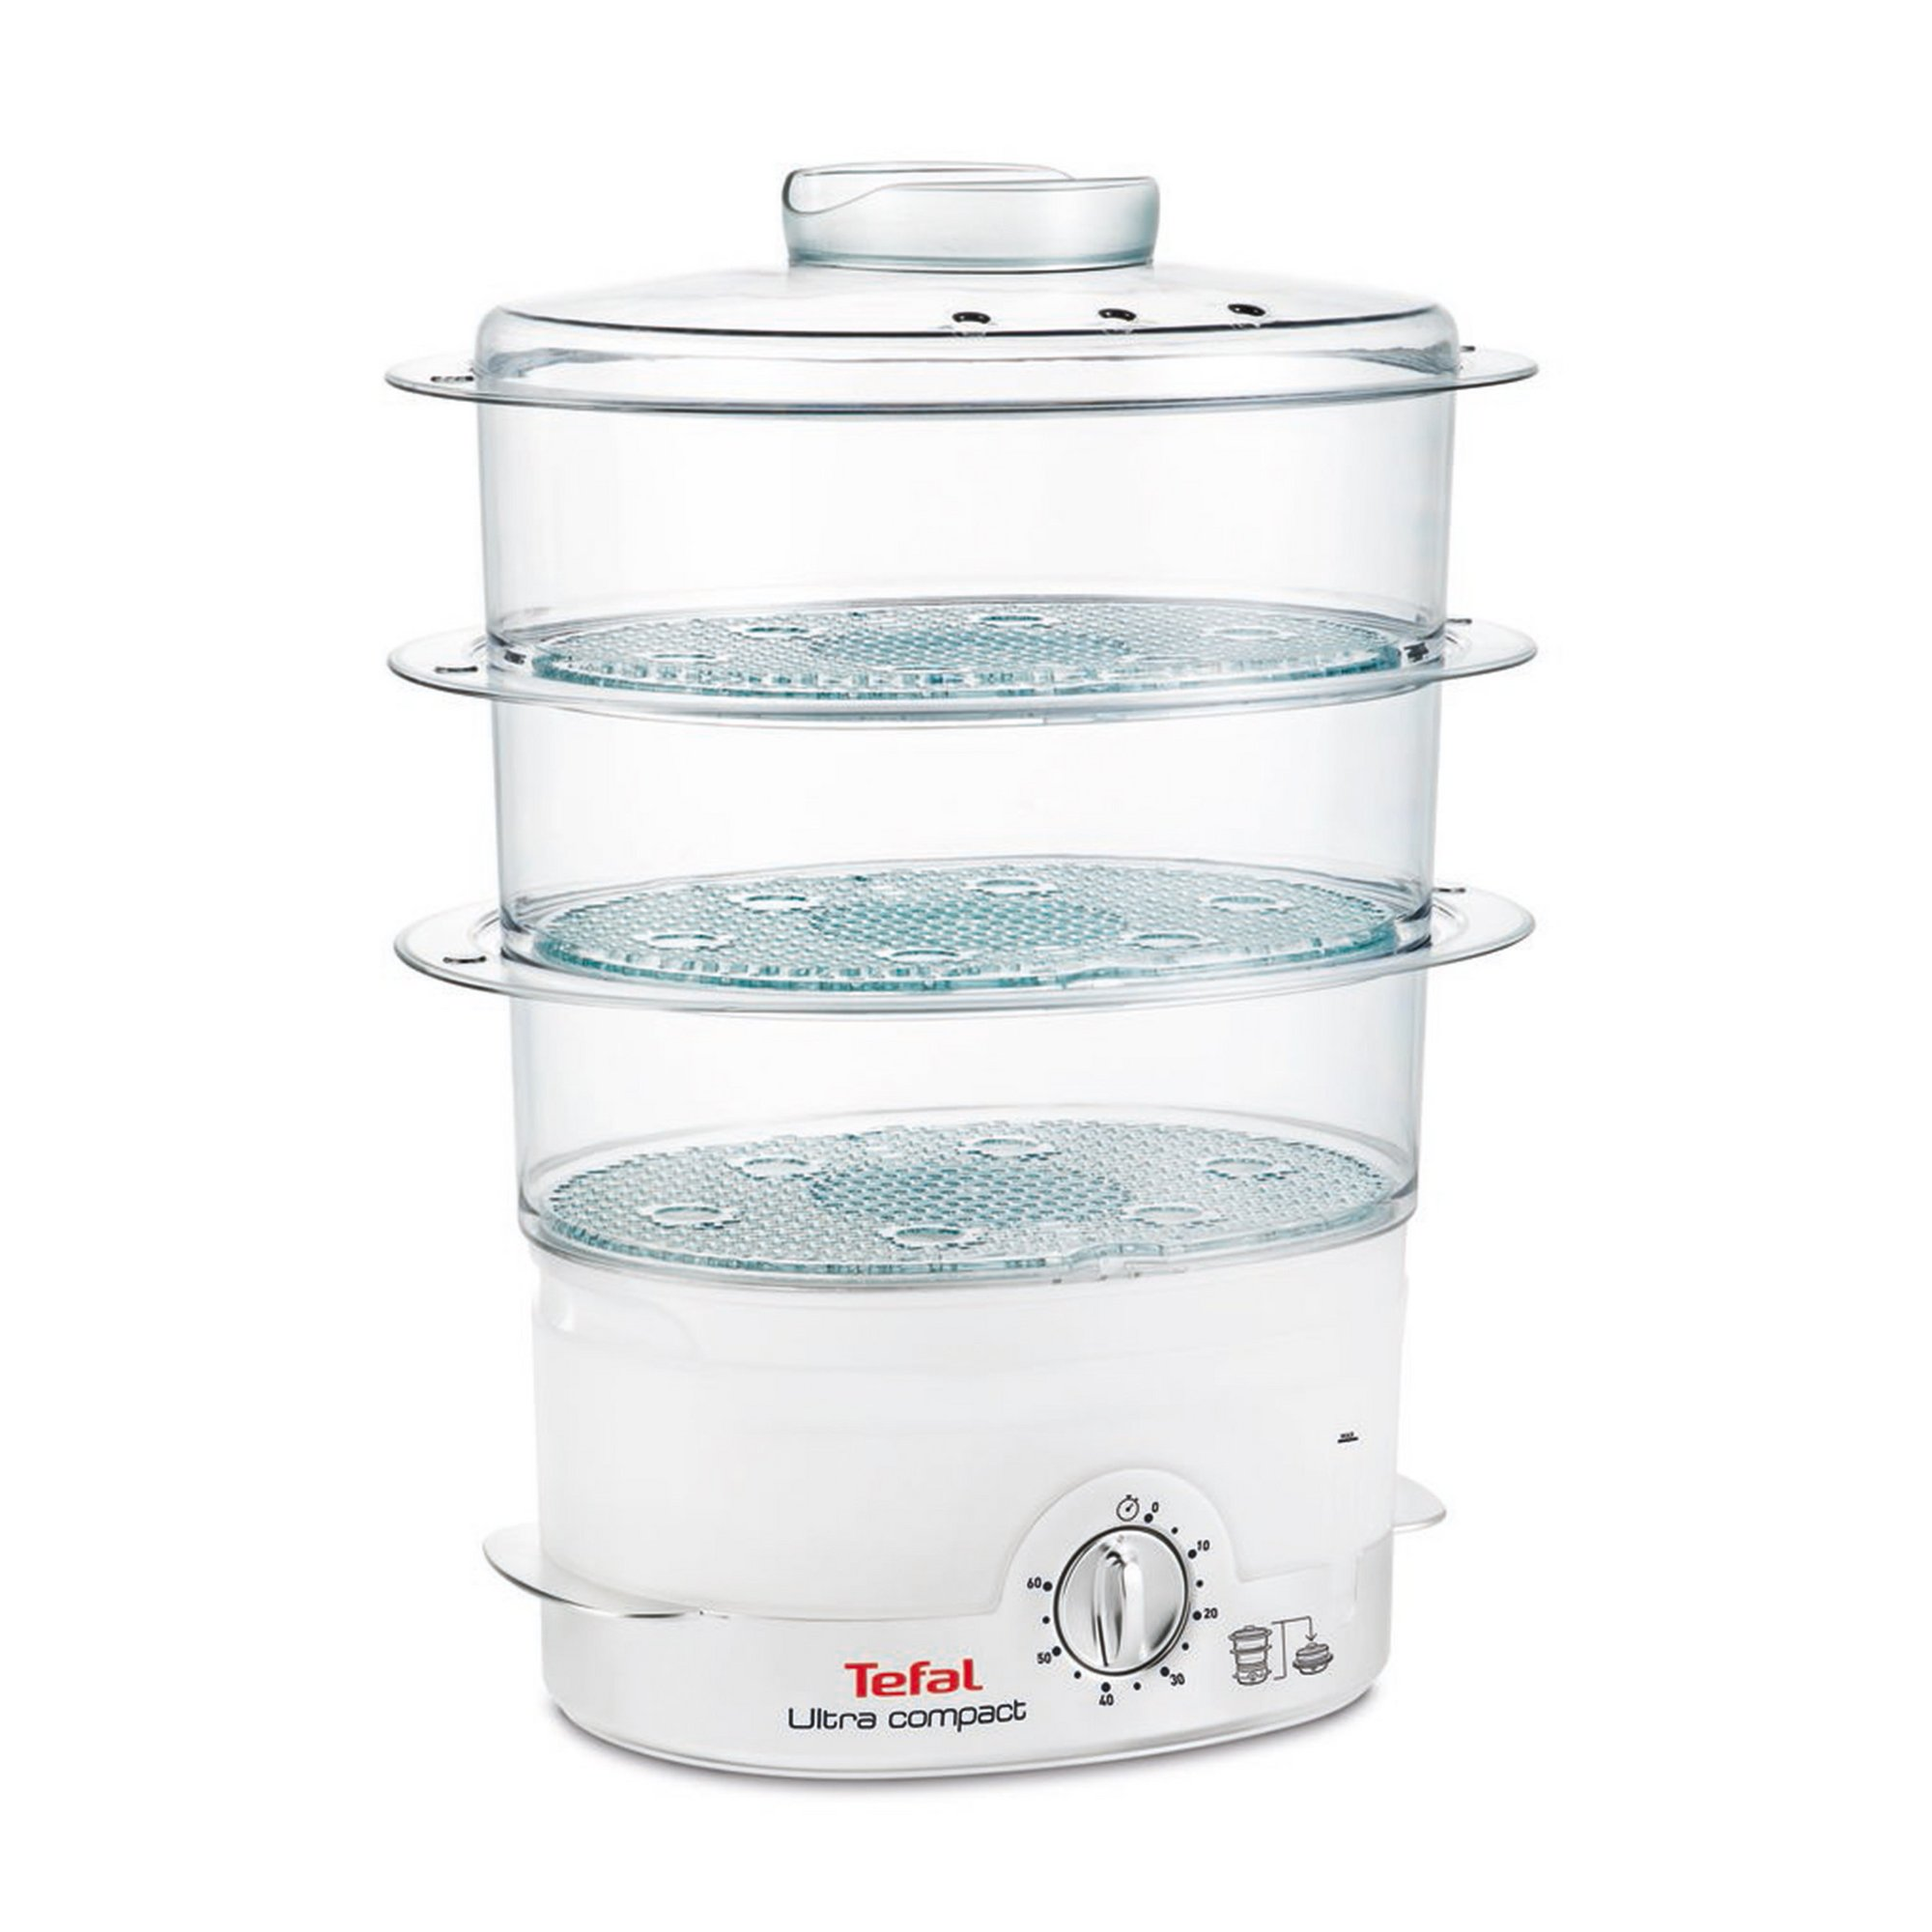 Image of Tefal Ultra Compact 3 Tier Electric Steamer